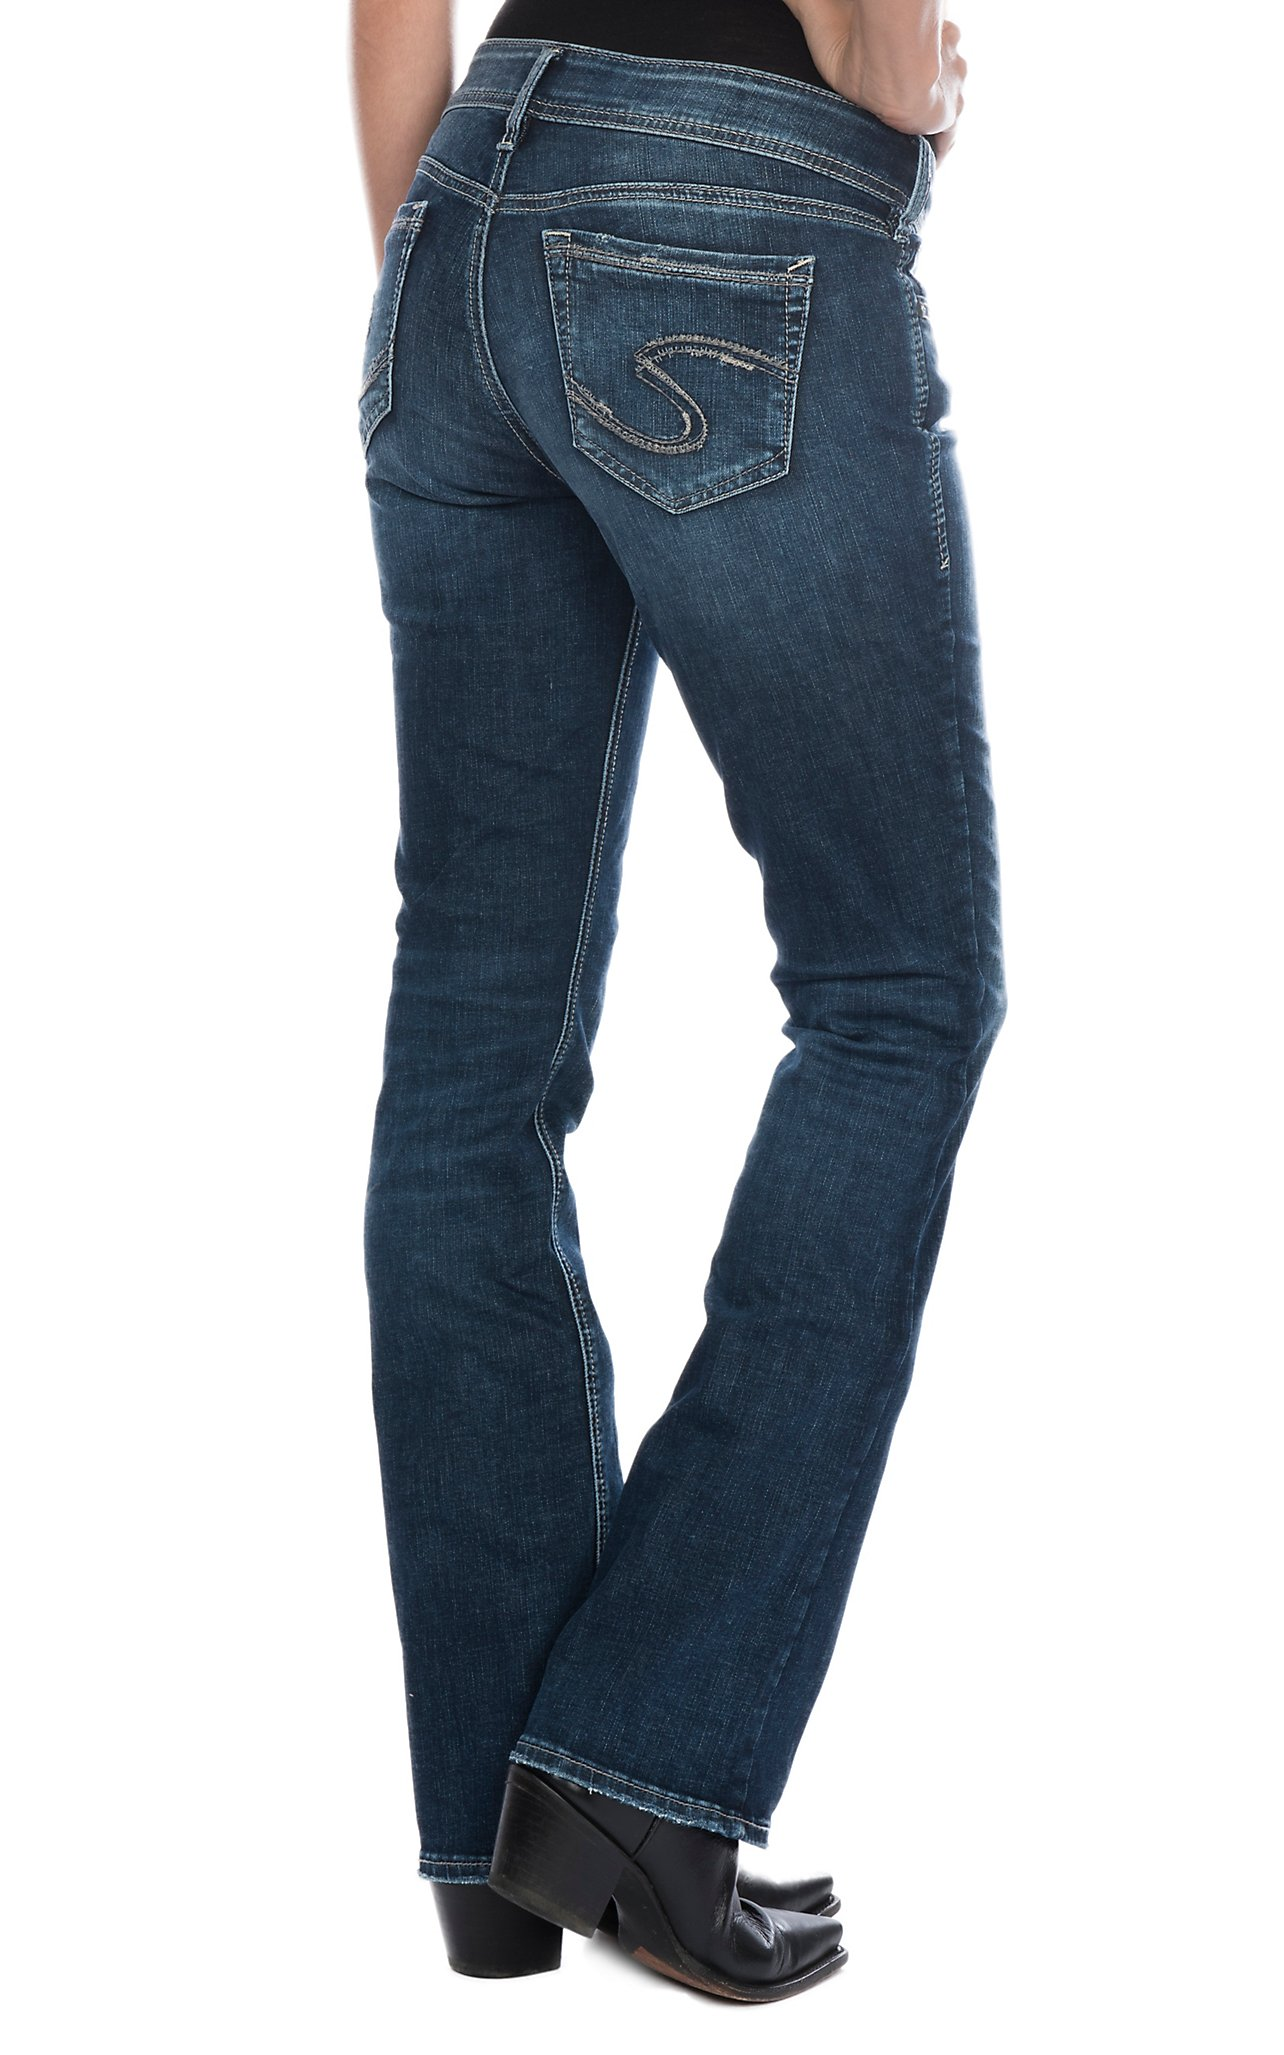 Shop womens western jeans free shipping 50 cavenders silver jeans womens elyse slim boot cut jeans geenschuldenfo Images